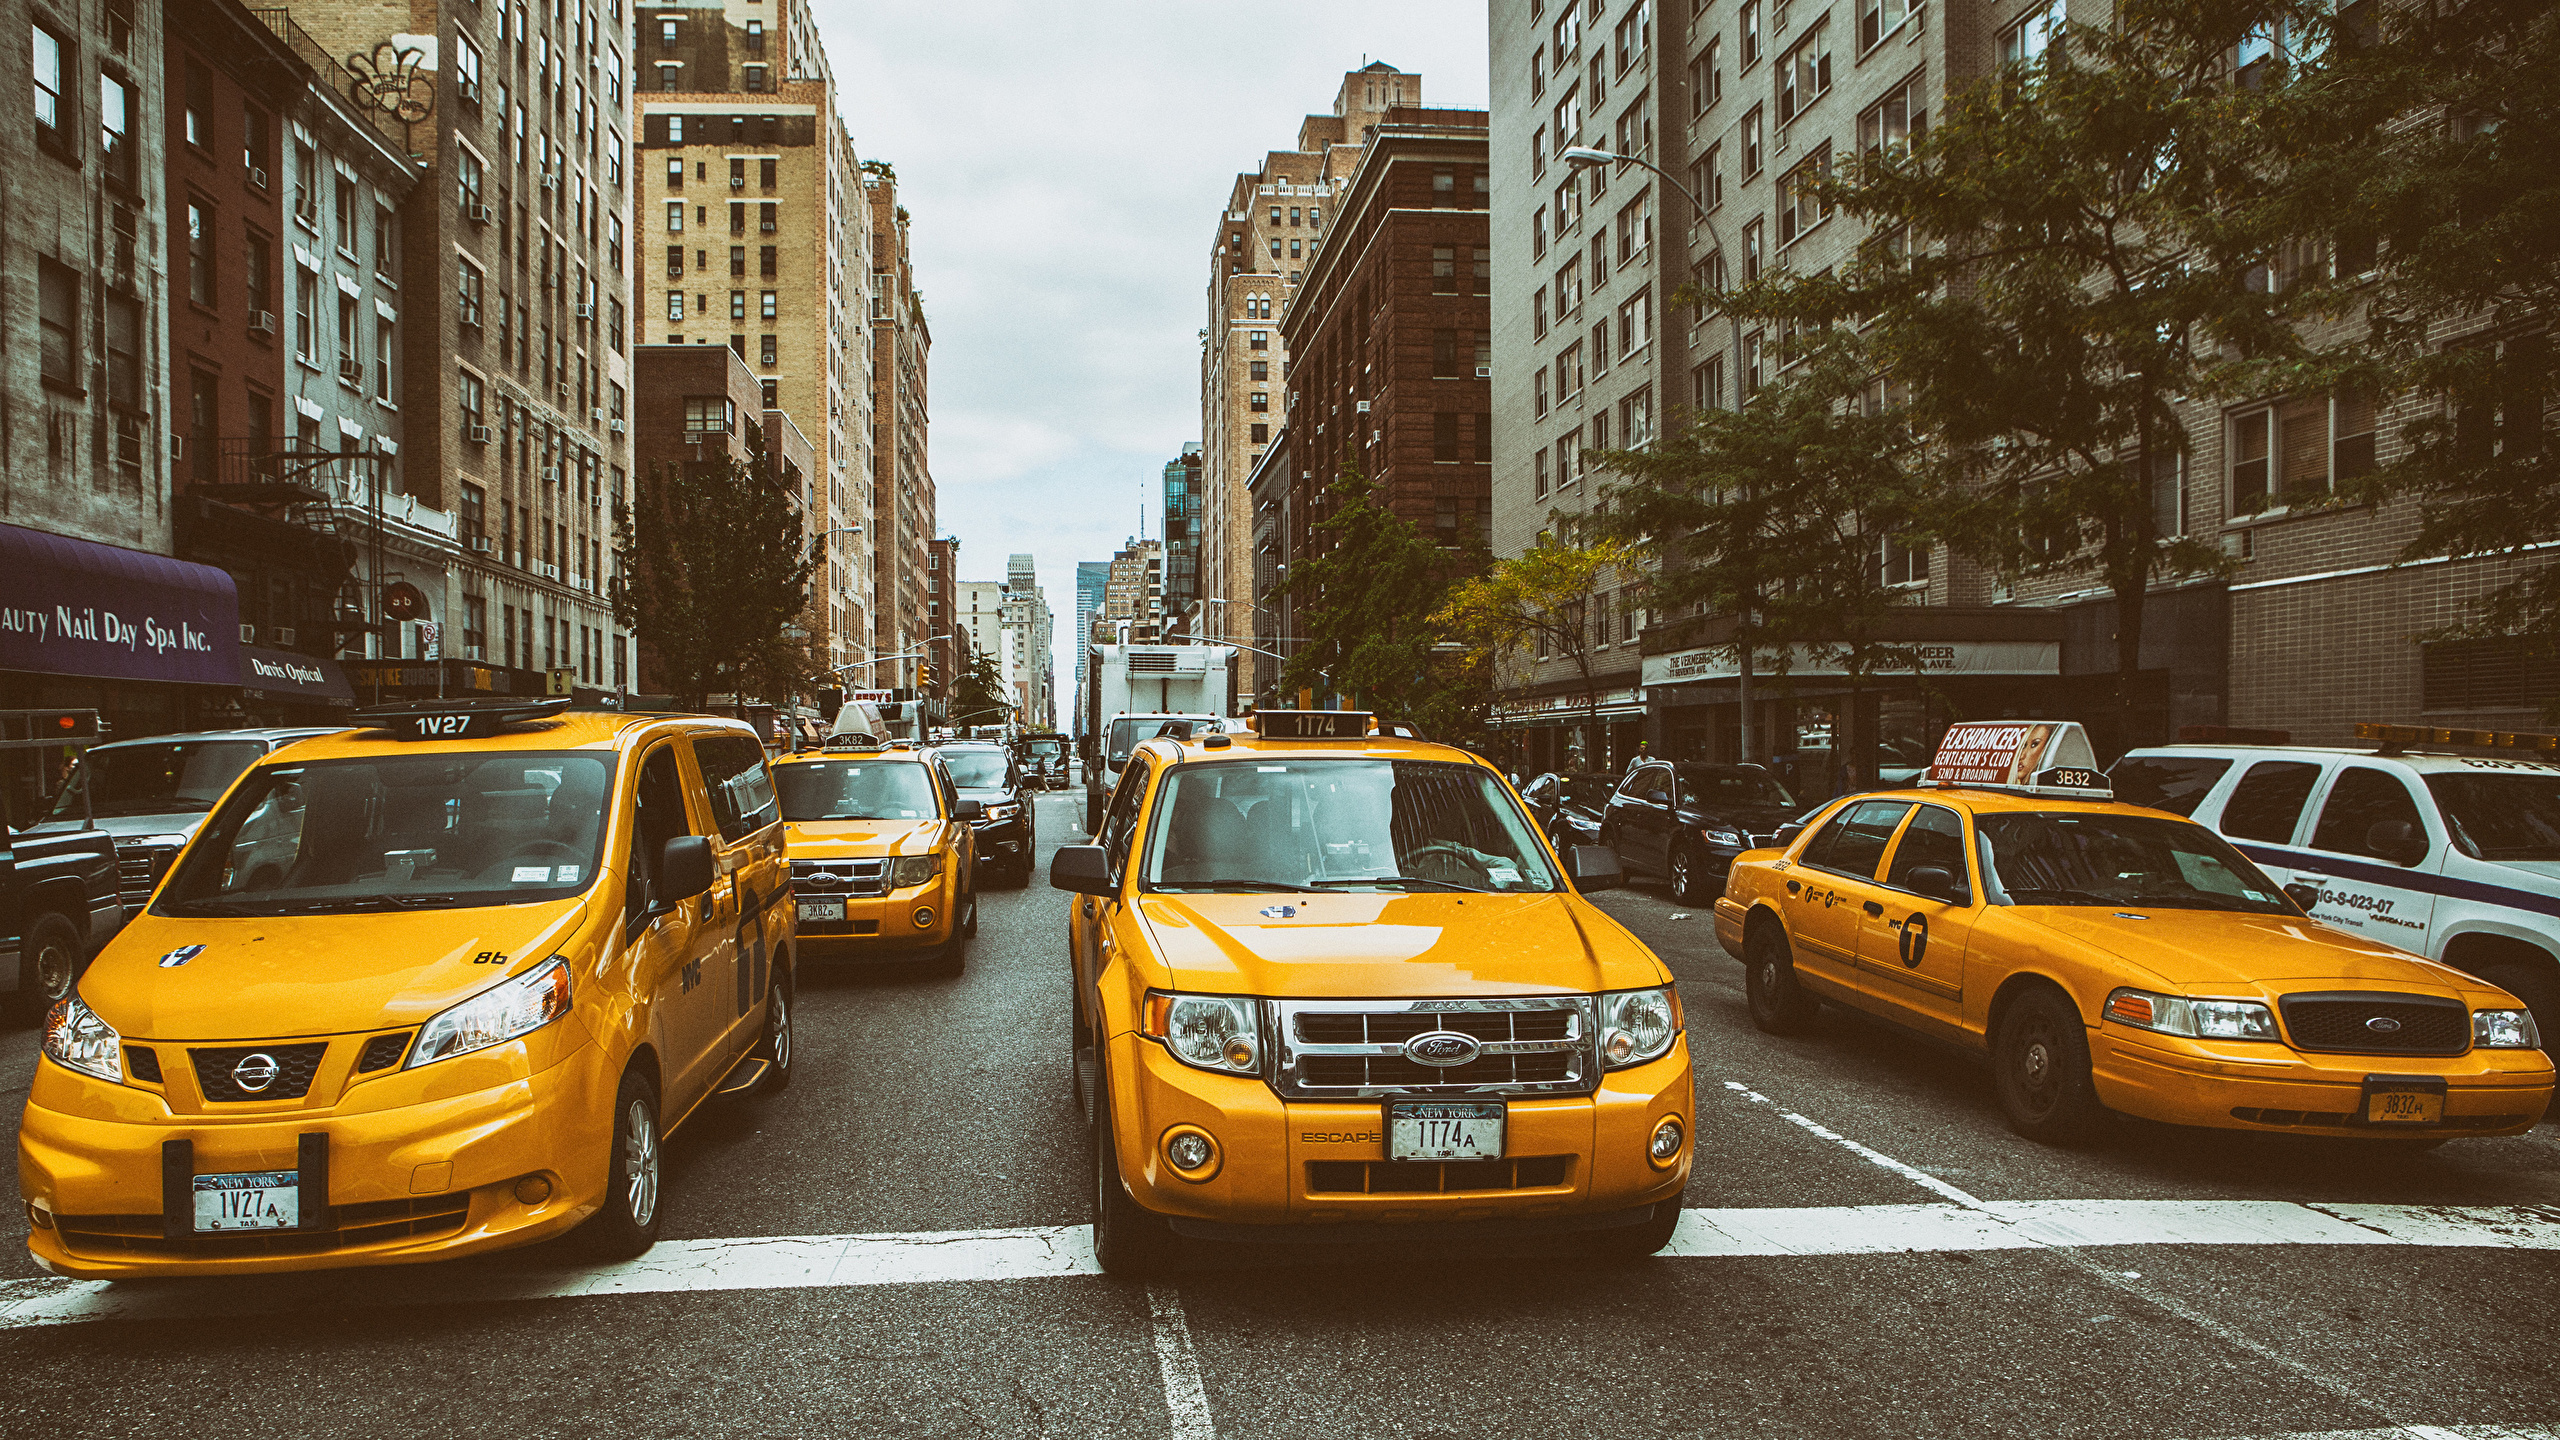 Fonds D Ecran 2560x1440 Taxi Voitures Usa New York